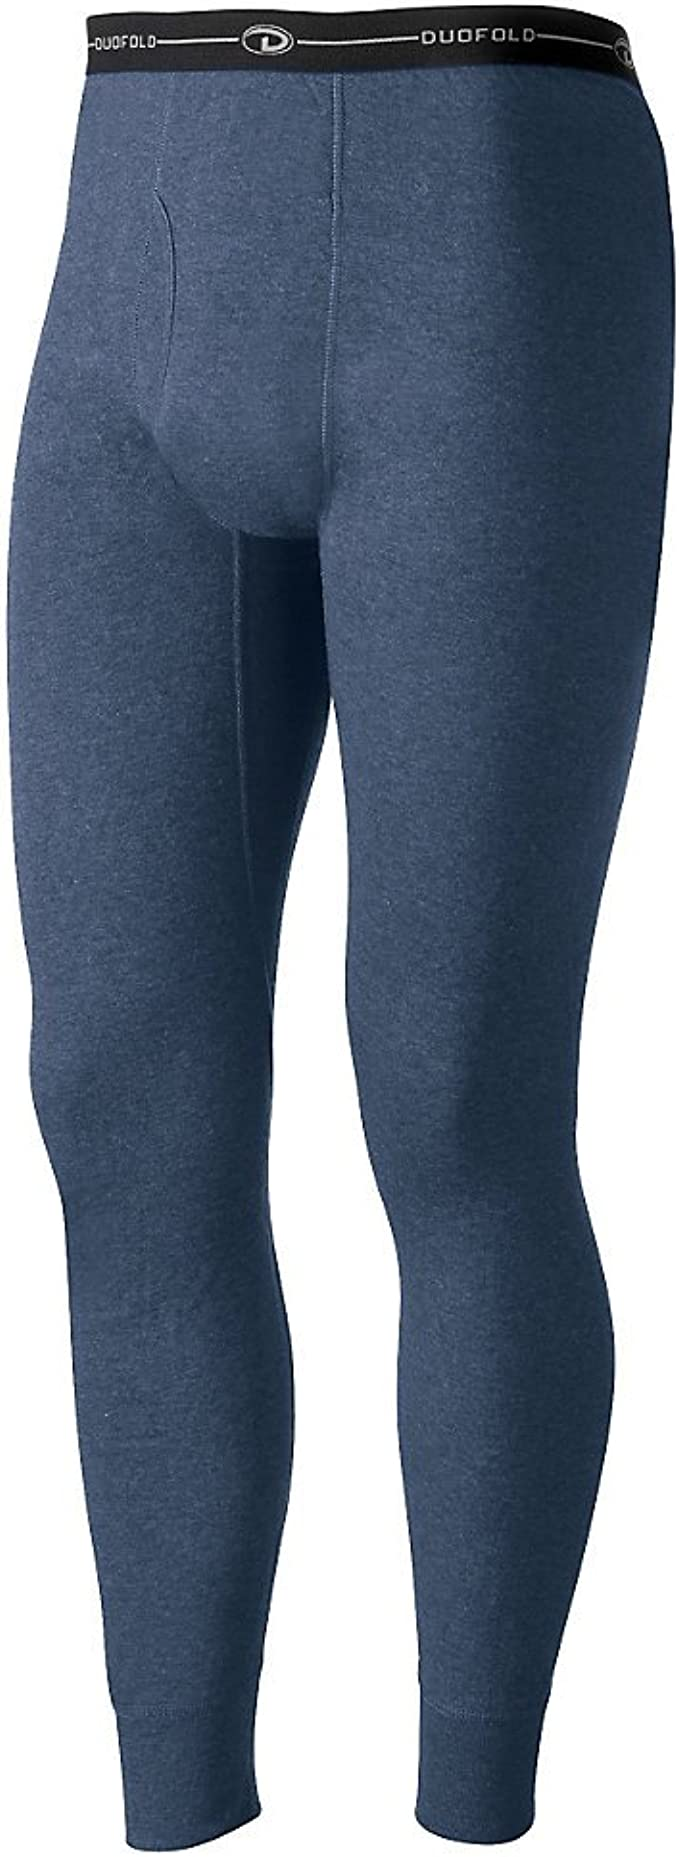 Details about  /Duofold by Champion Mens Varitherm Performance 2-Layer Thermal Pants